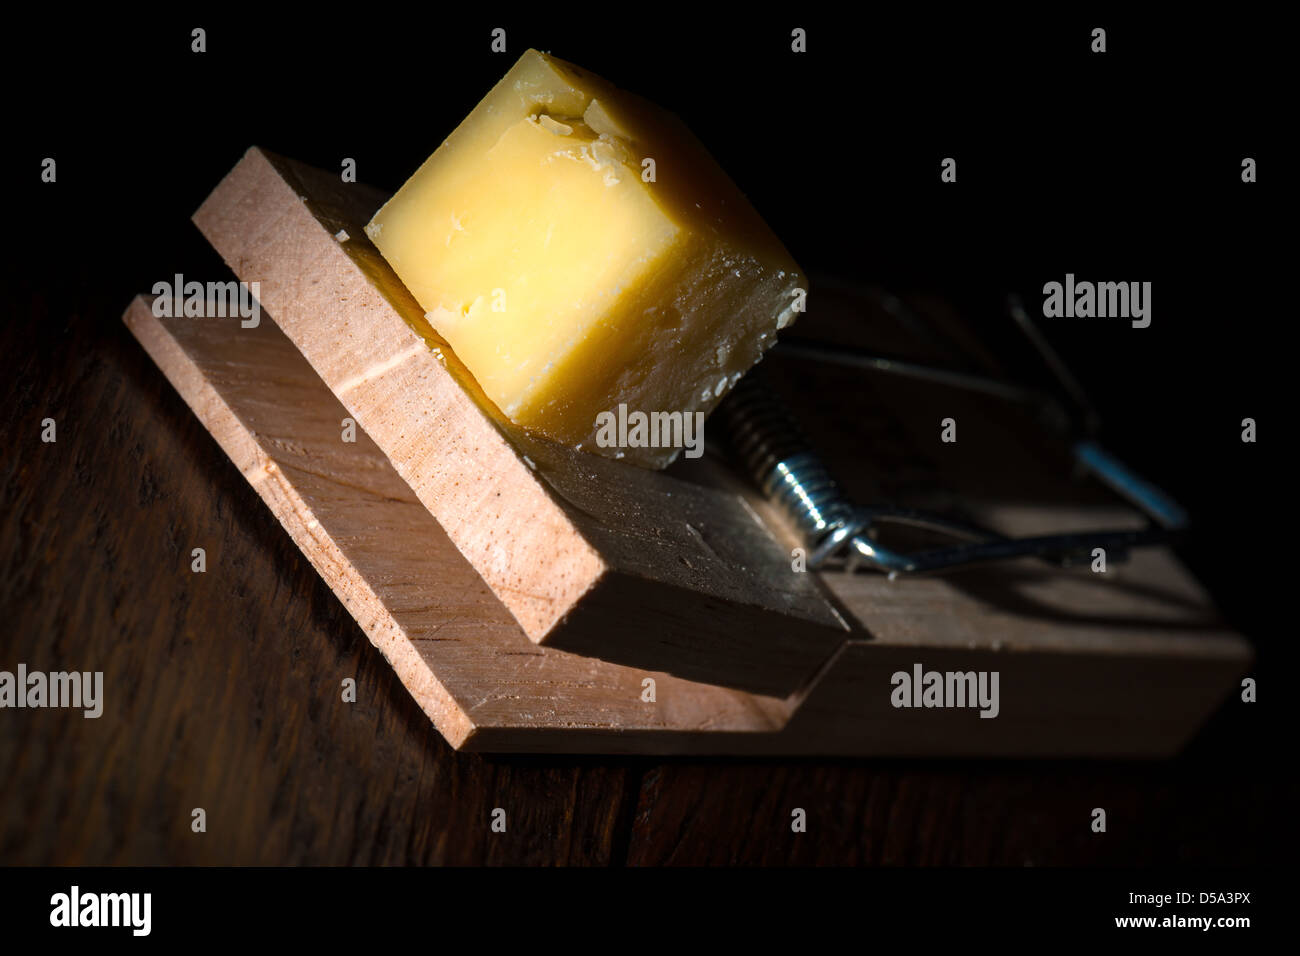 The Trap! - Stock Image